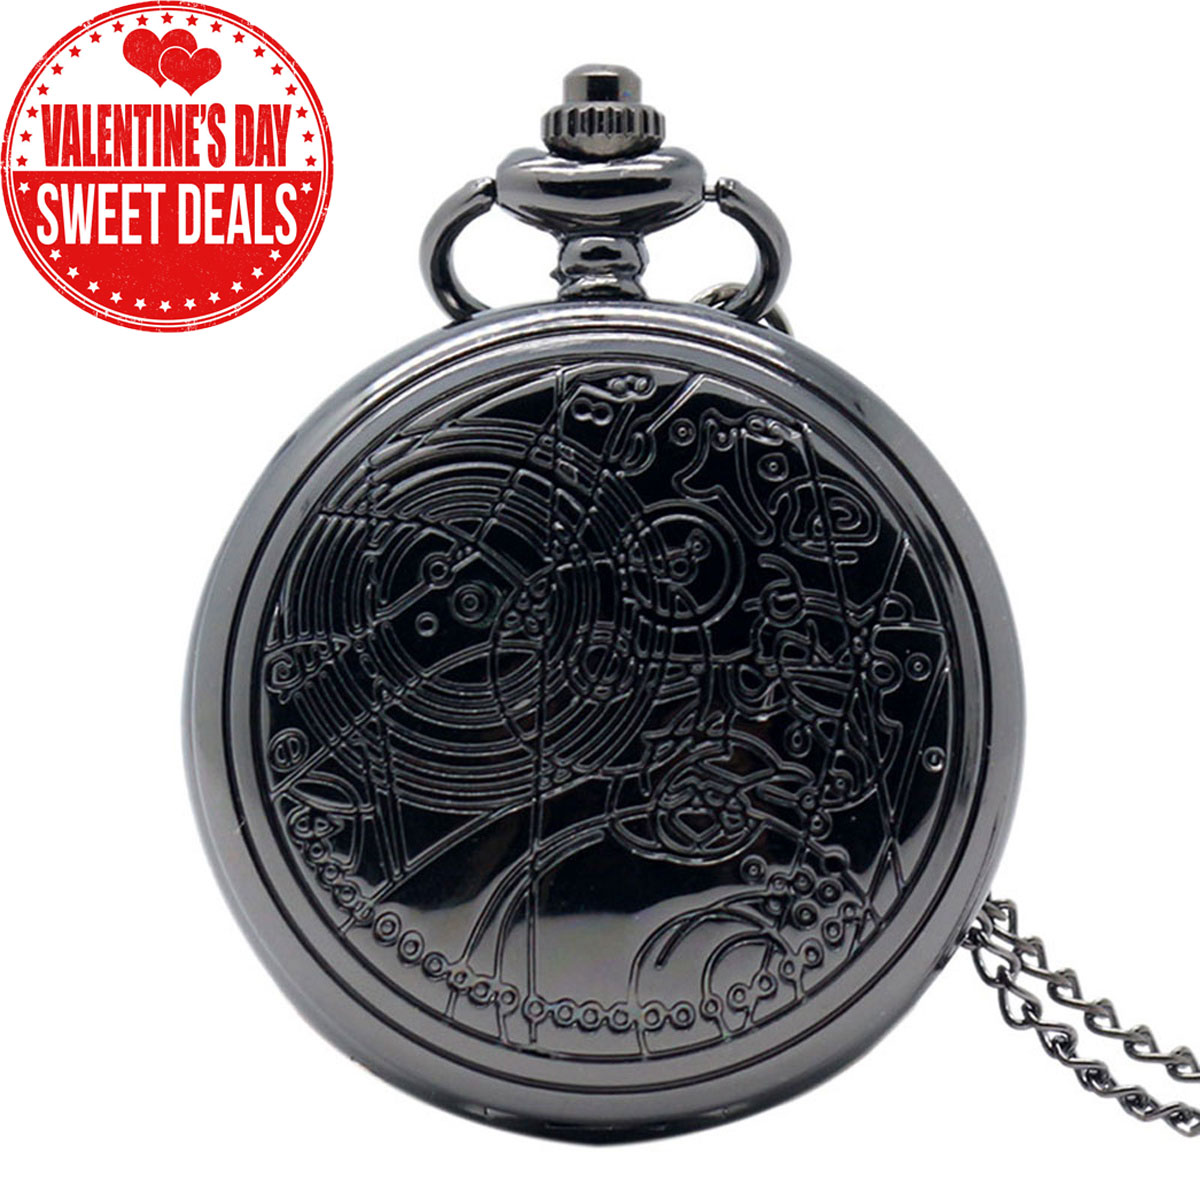 Yisuya Antique Doctor Who Dr Who Pocket Watch Valentine